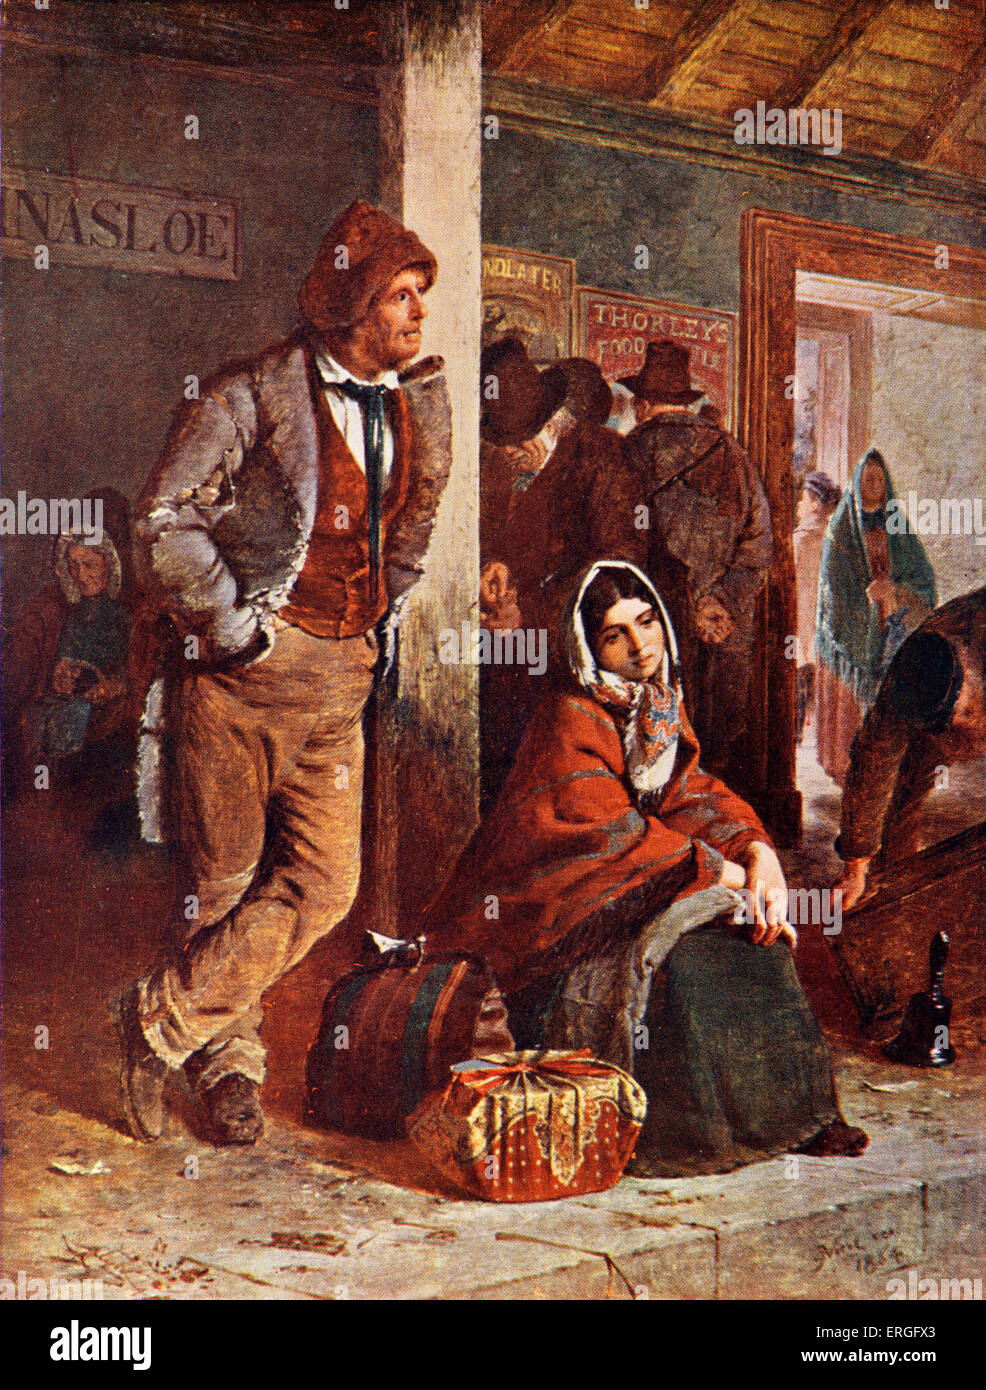 The Emigrants - from painting by Erskine Nicol. - Stock Image